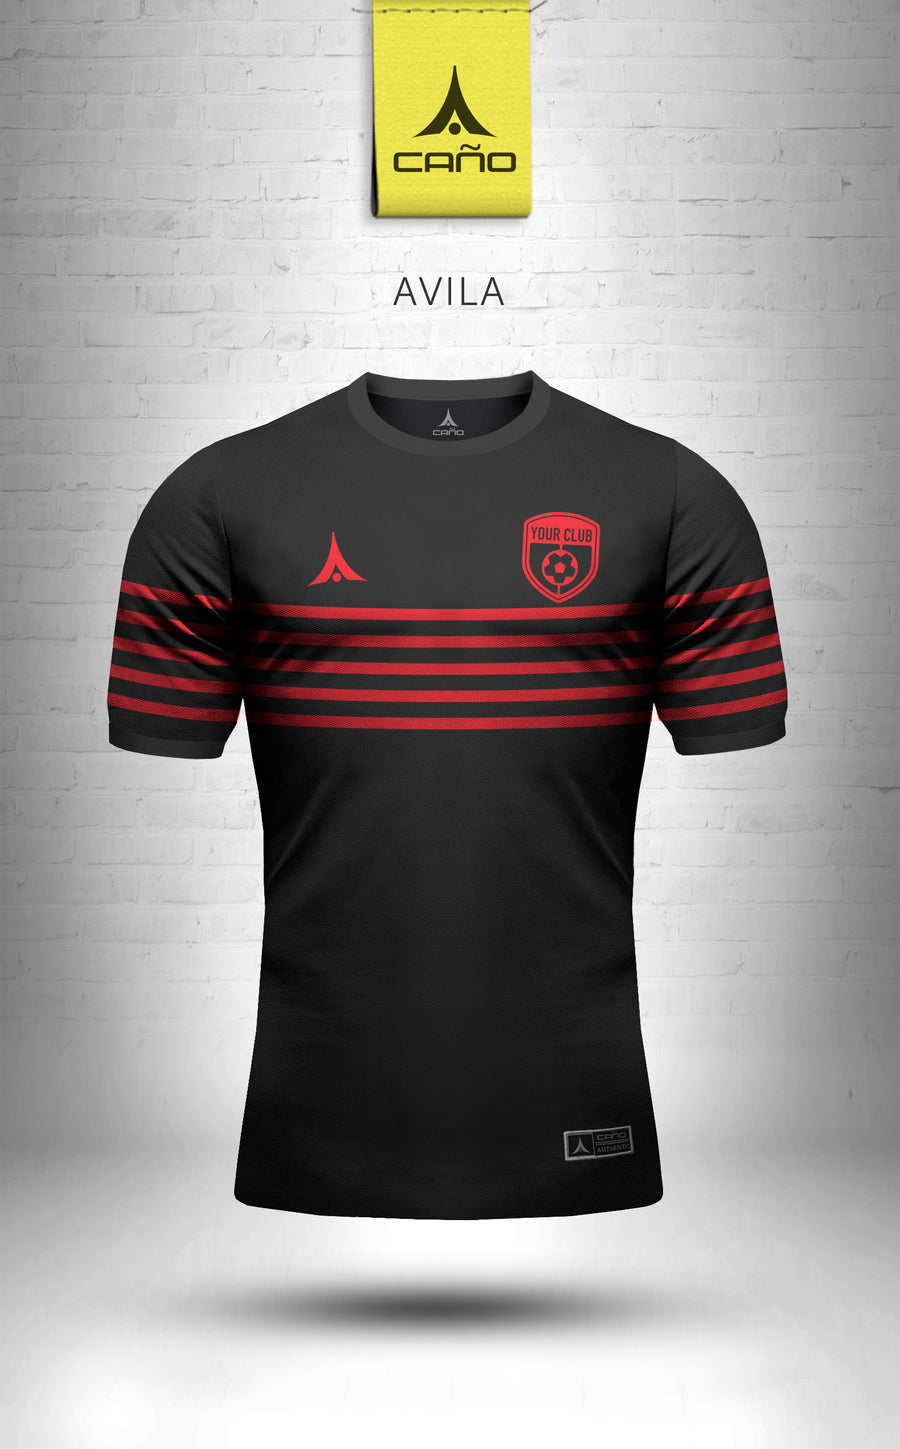 Avila in black/red